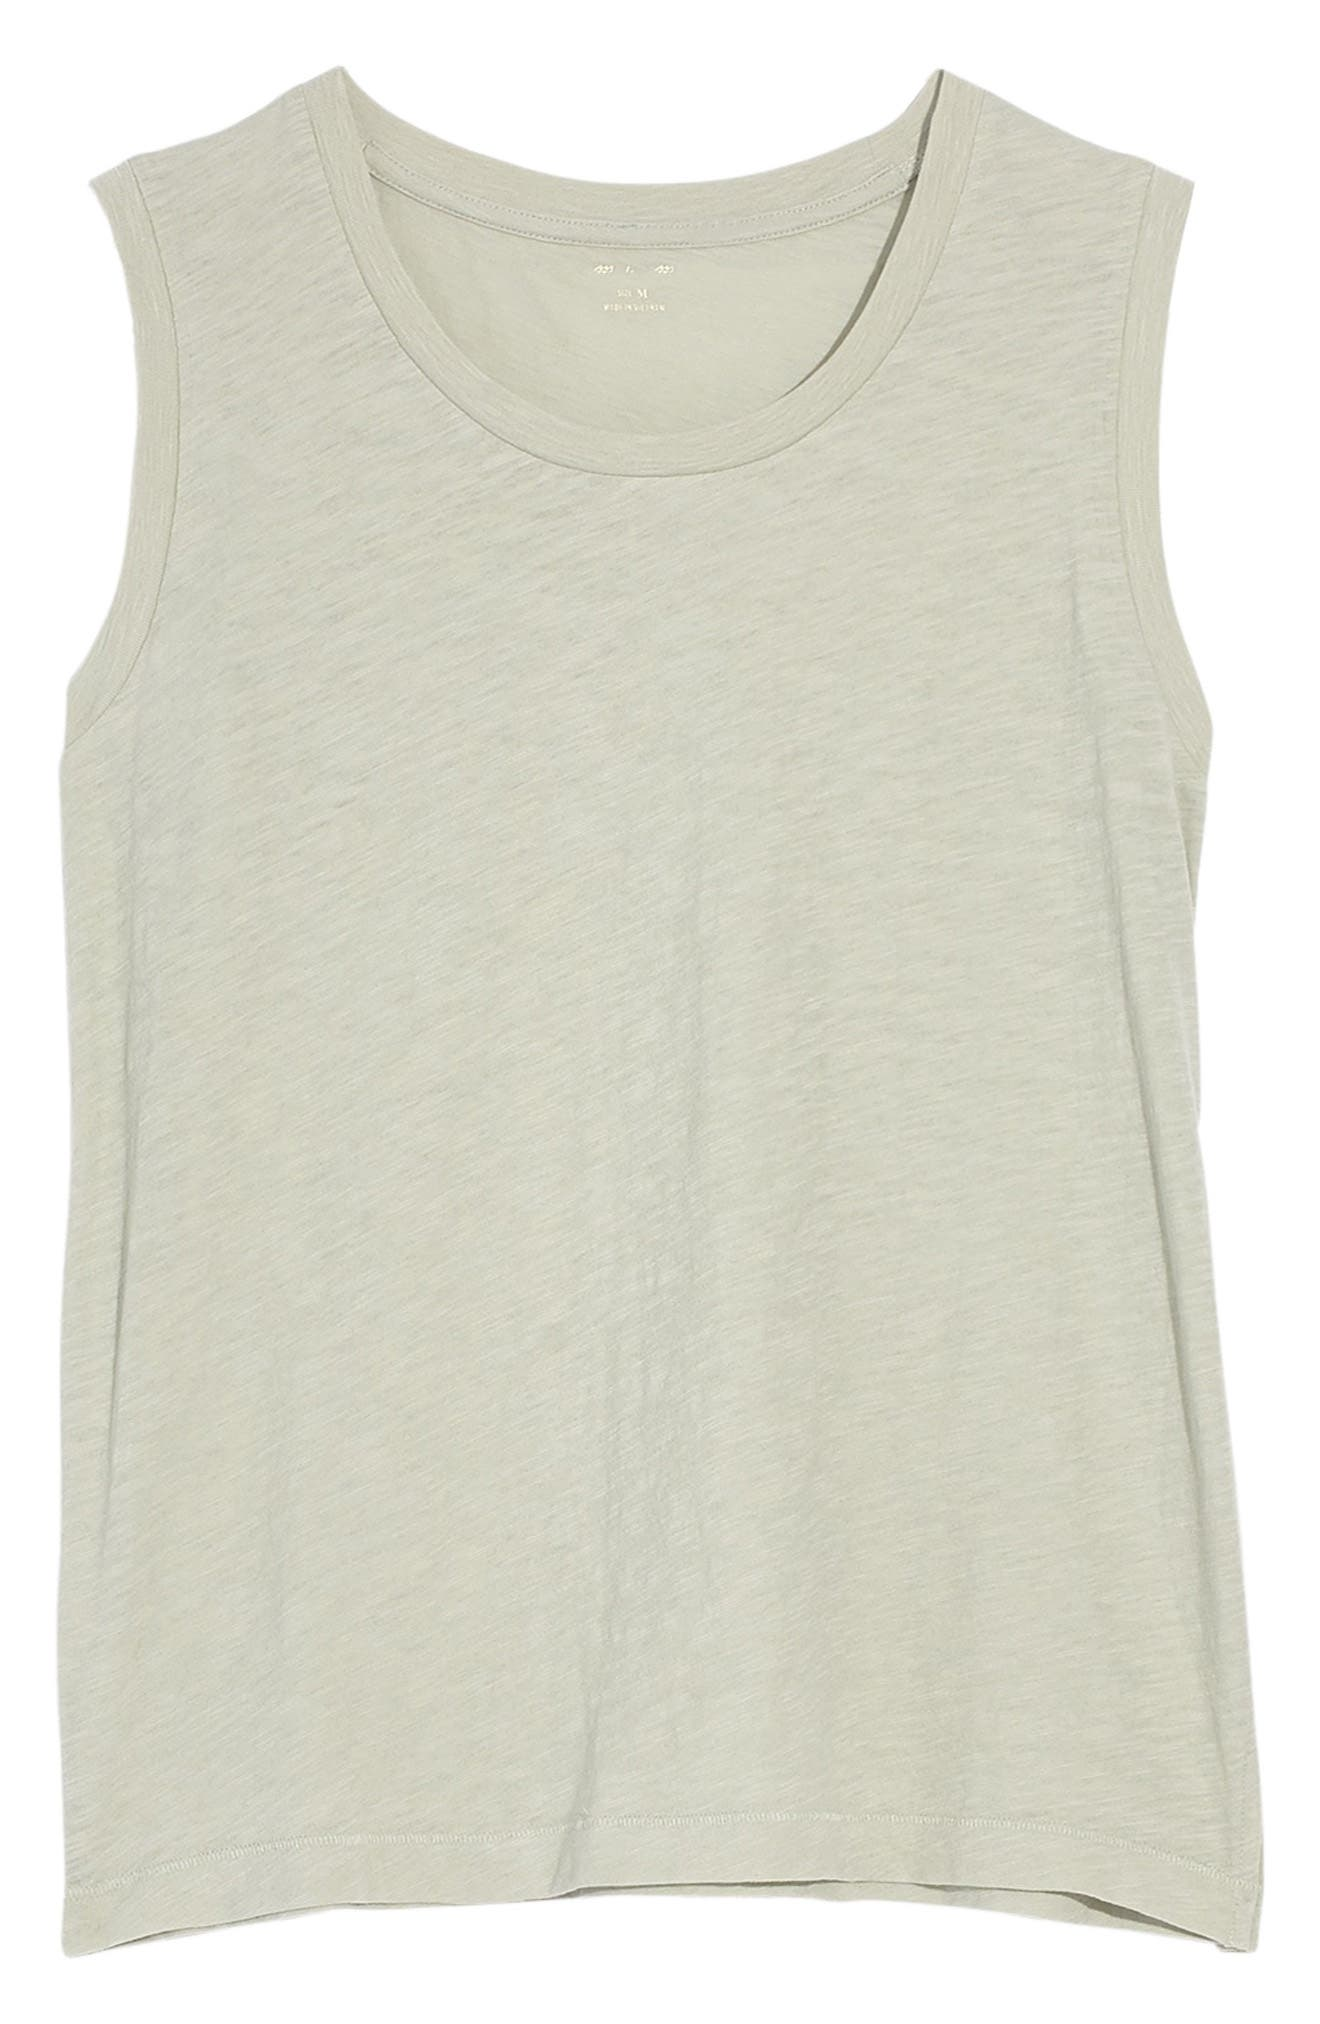 MADEWELL Whisper Cotton Crewneck Muscle Tank, Main, color, SUNFADED SAGE